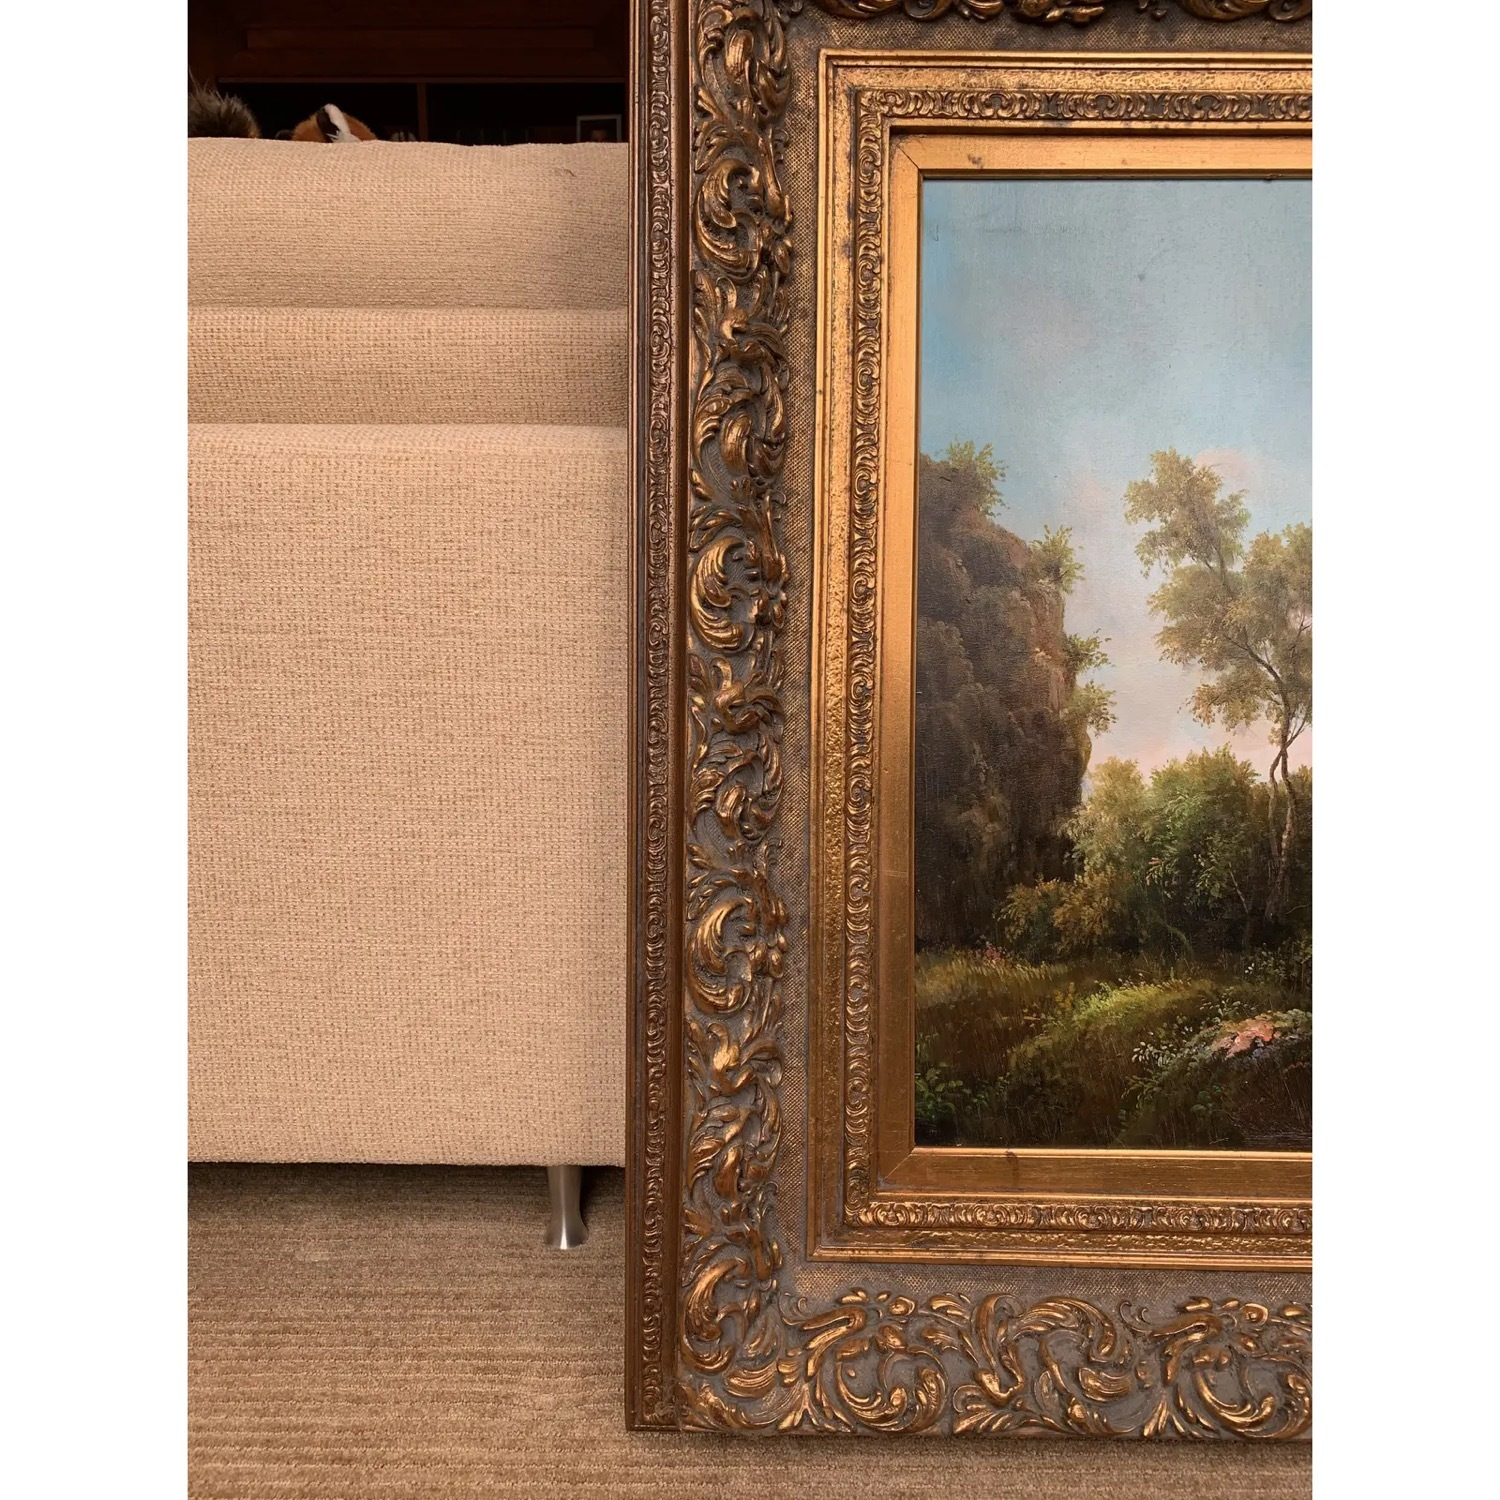 Framed Early 20th Century Oil Painting - G.Henson - image-8